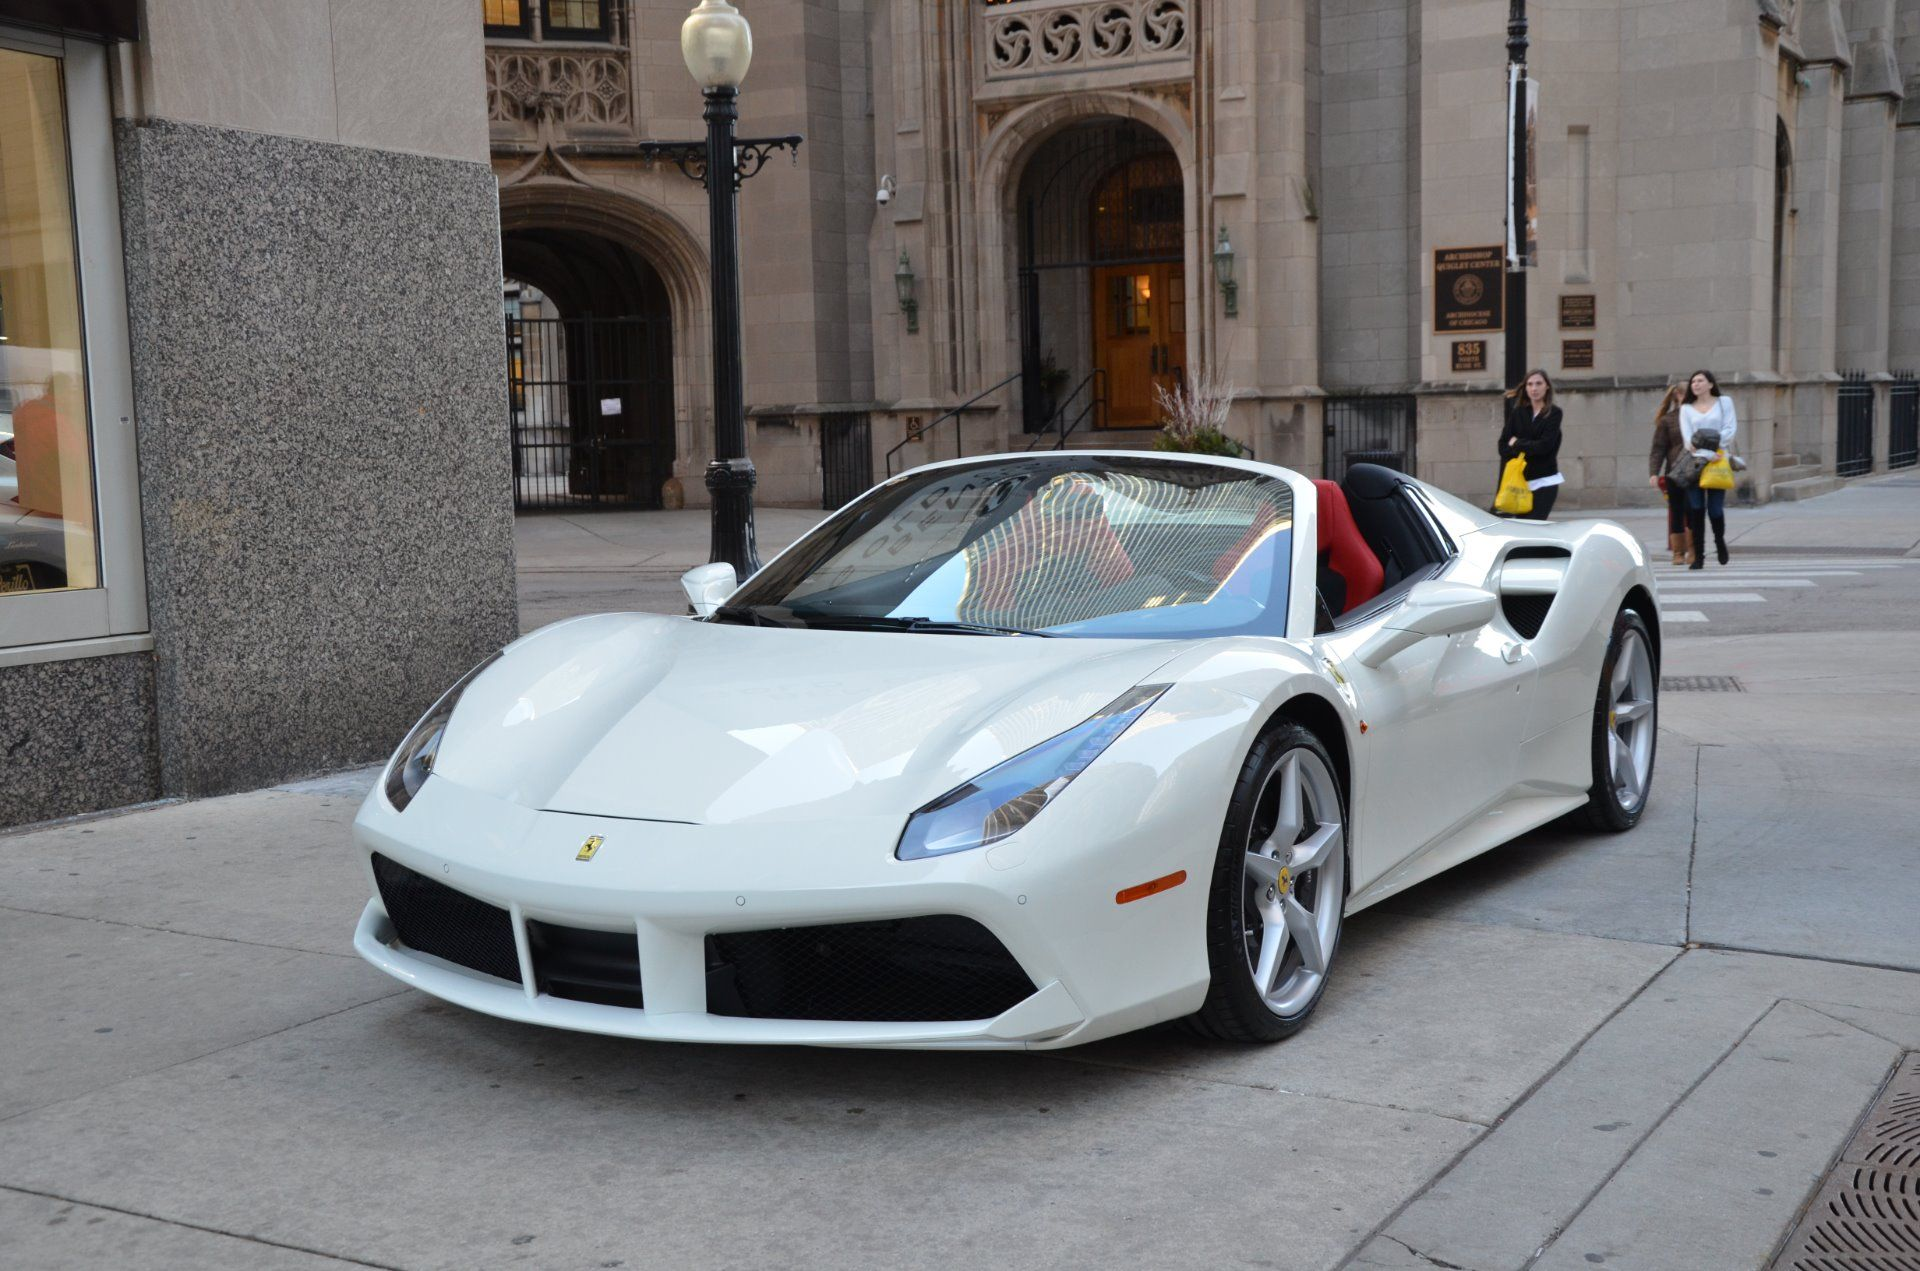 Image Result For Ferrari 488 Spider White Ferrari Ferrari 488